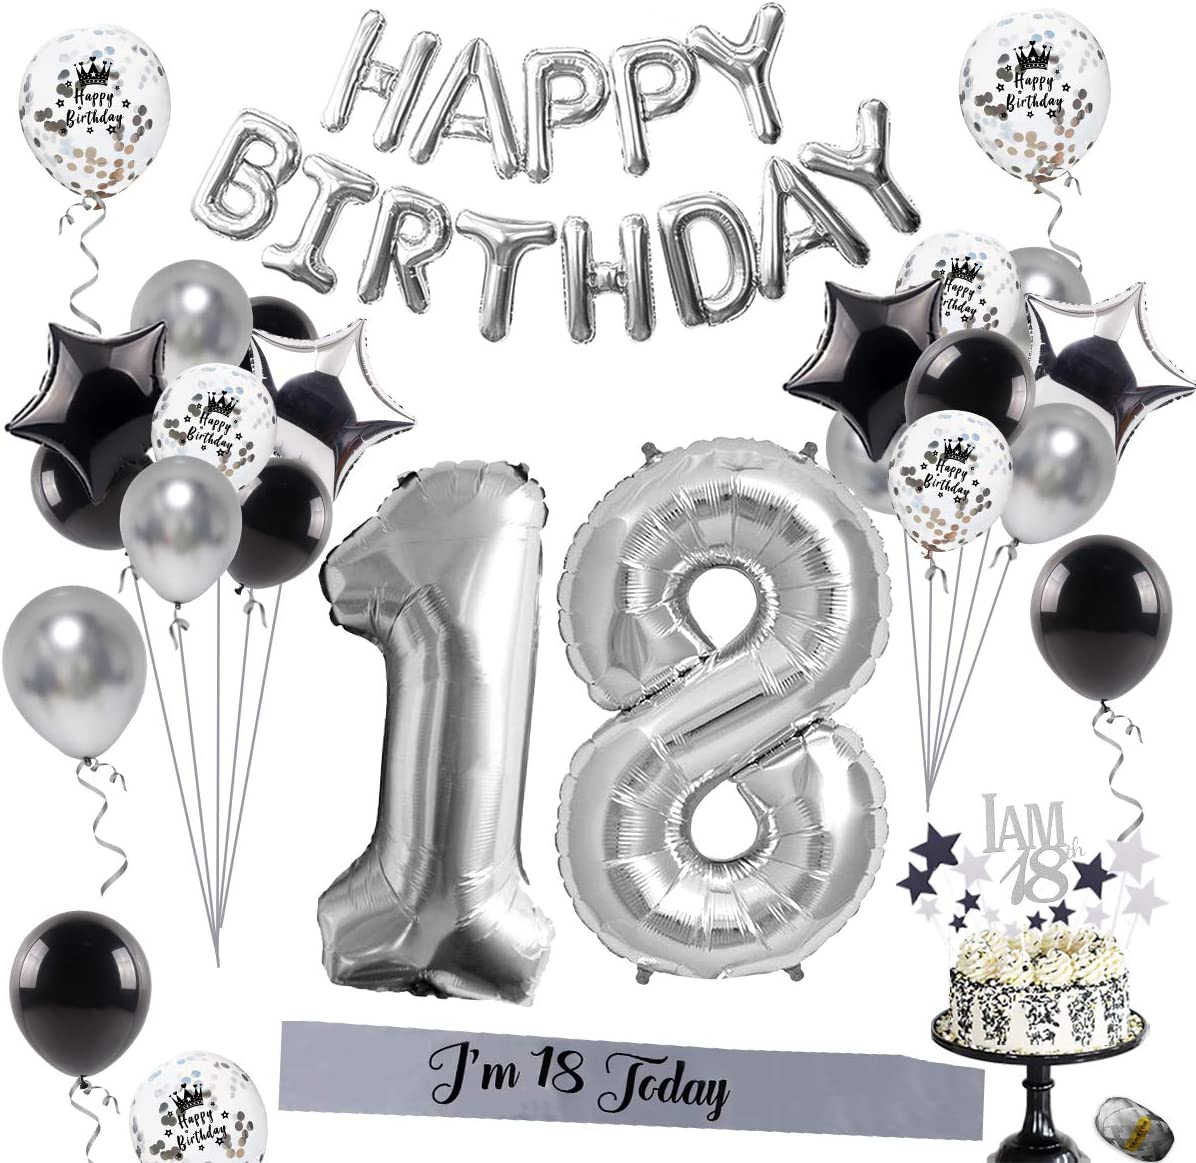 18th Birthday Decorations Party Supplies – Silver 18 Birthday, Silver Number 18 and HAPPY BIRTHDA Banner Balloon, Confetti Balloons, Foil Star Balloon, 18 Birthday Sash for Boys/Girls, MEN/WOMEN